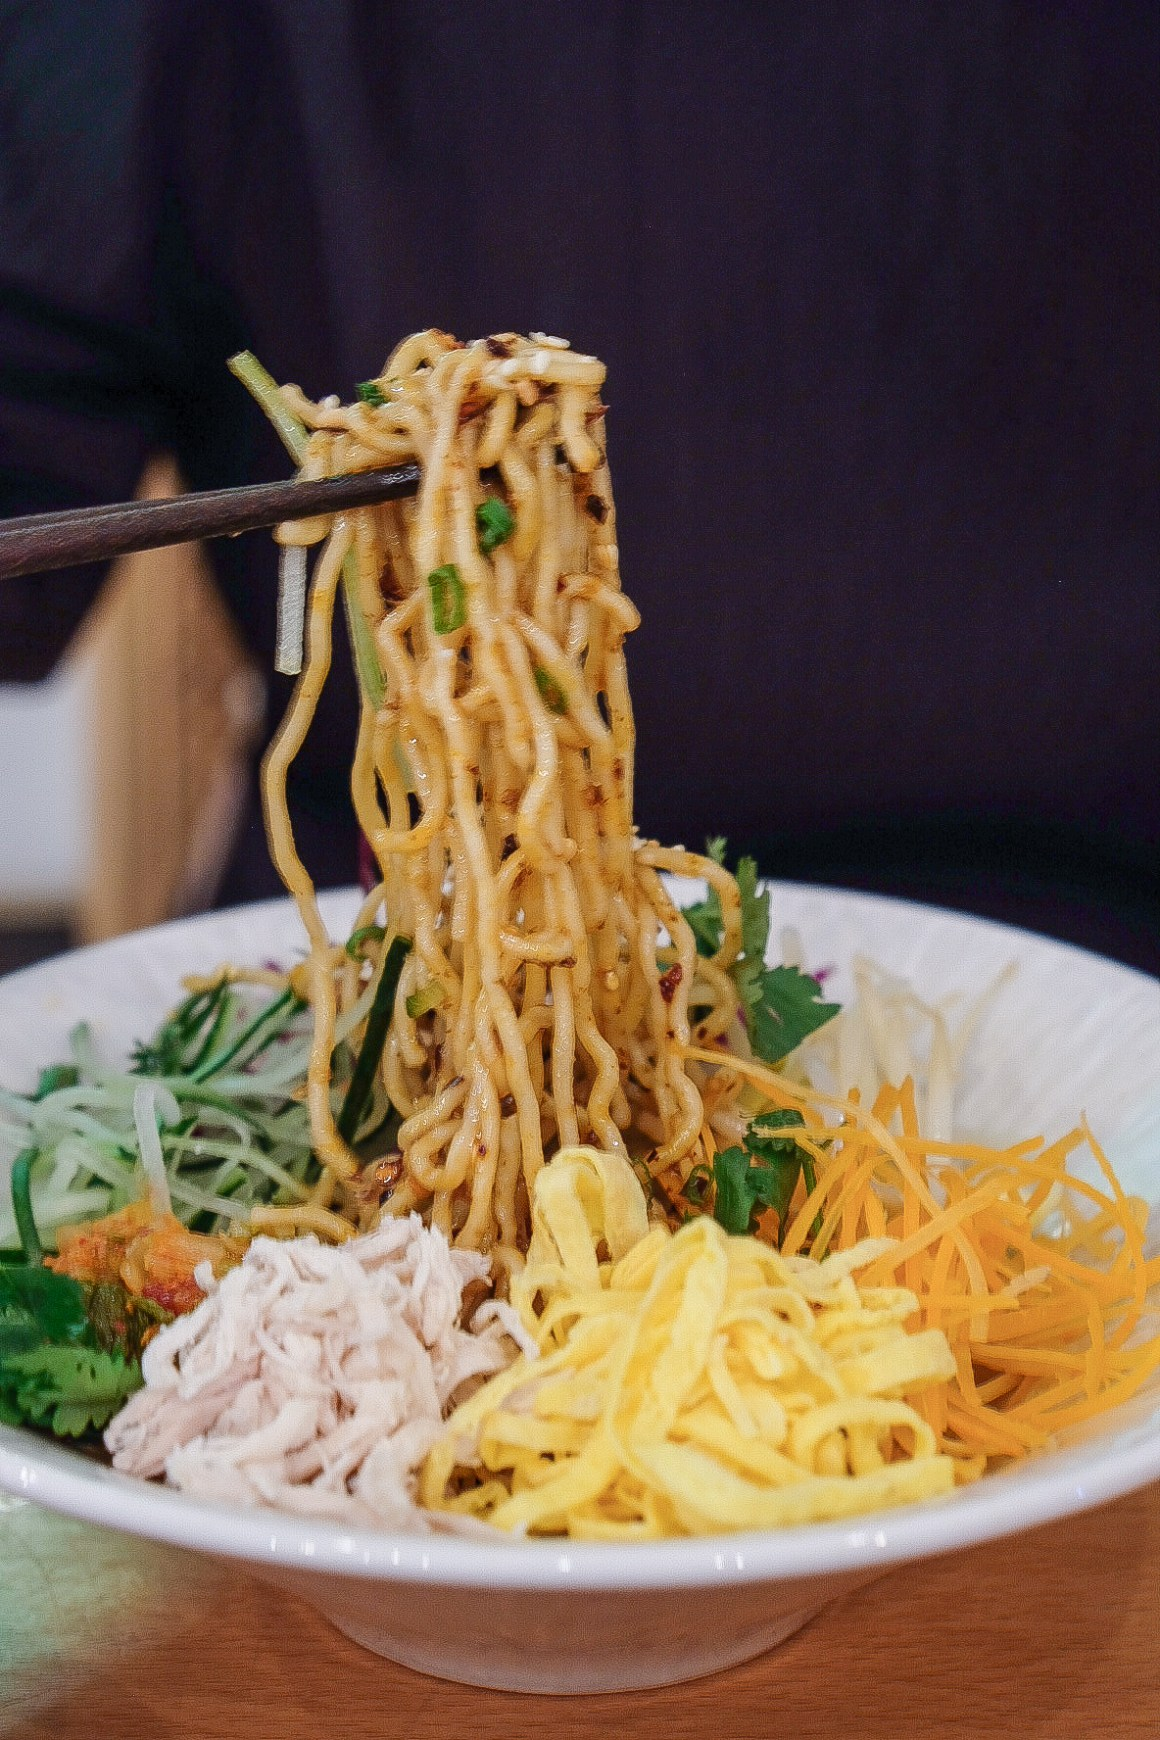 Sichuan Alley: Noodle House By Chef Pang - Lifting Noodle